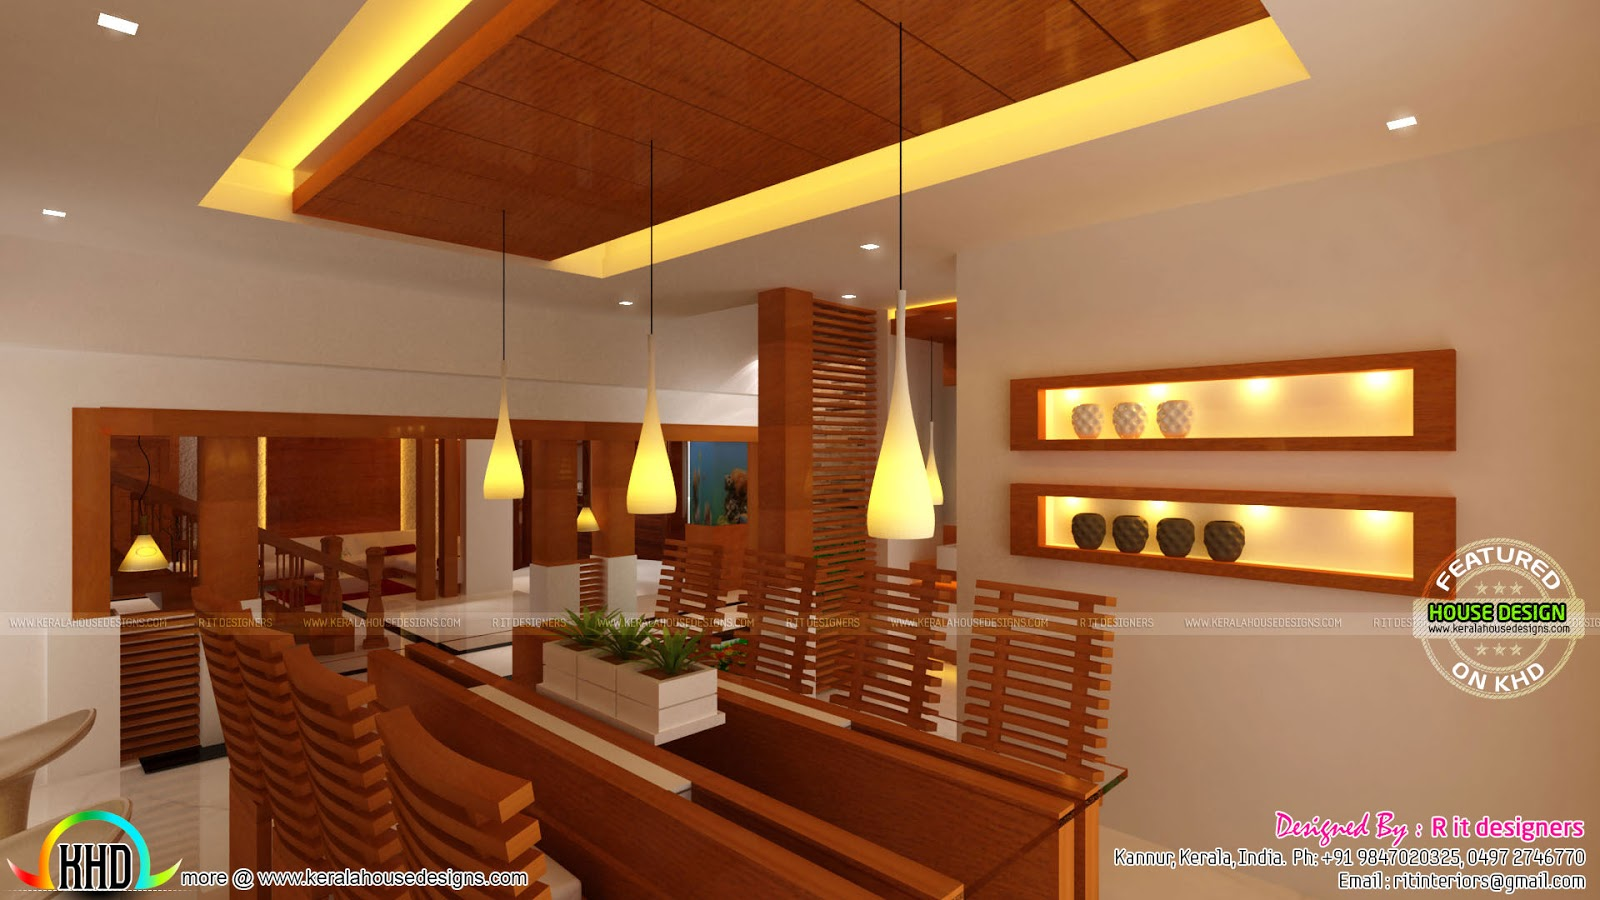 Wooden finish interior designs kerala home design and for House plans with interior pictures